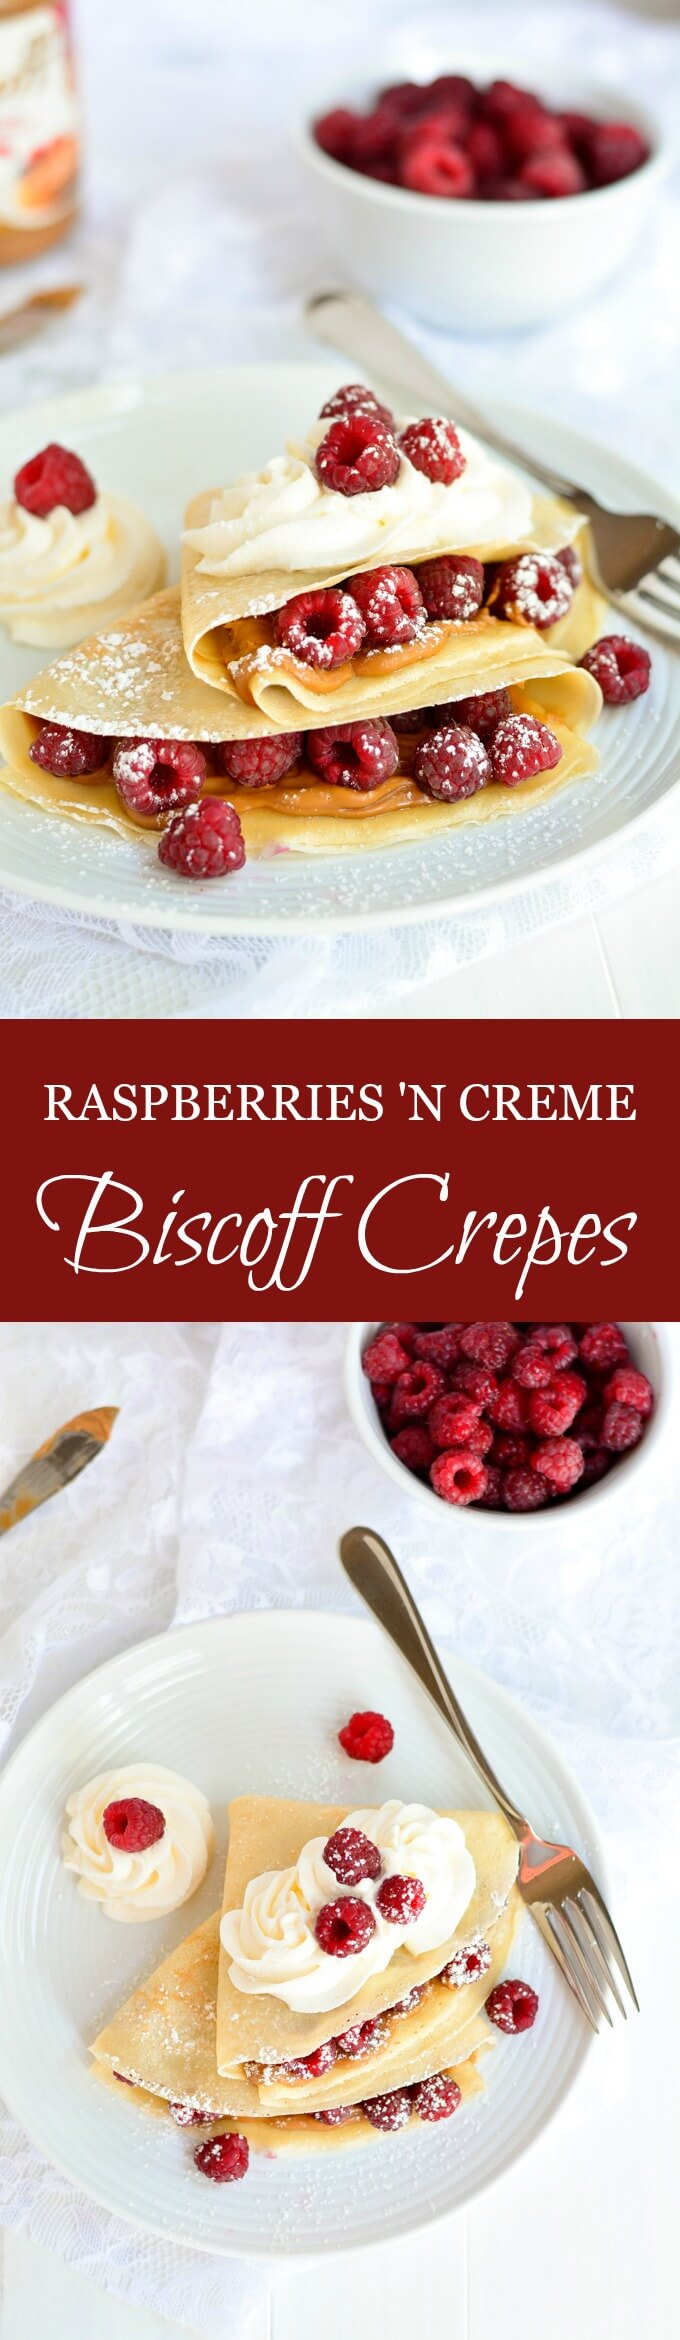 Start your weekend off right with the most delicious breakfast-- RASPBERRIES 'N CREME BISCOFF CREPES!